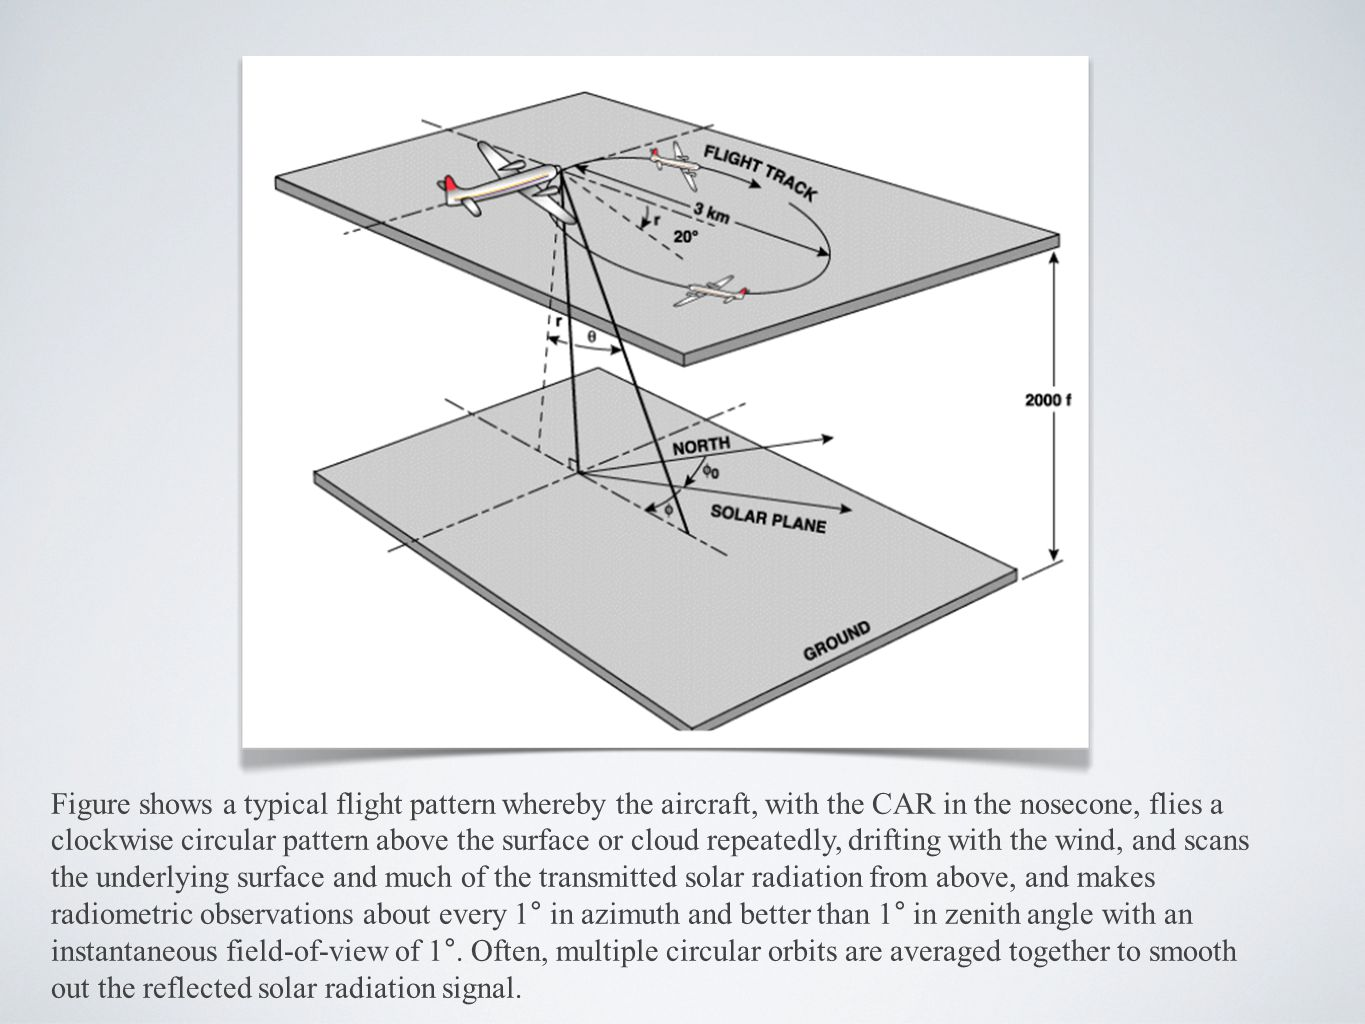 Figure shows a typical flight pattern whereby the aircraft, with the CAR in the nosecone, flies a clockwise circular pattern above the surface or clou